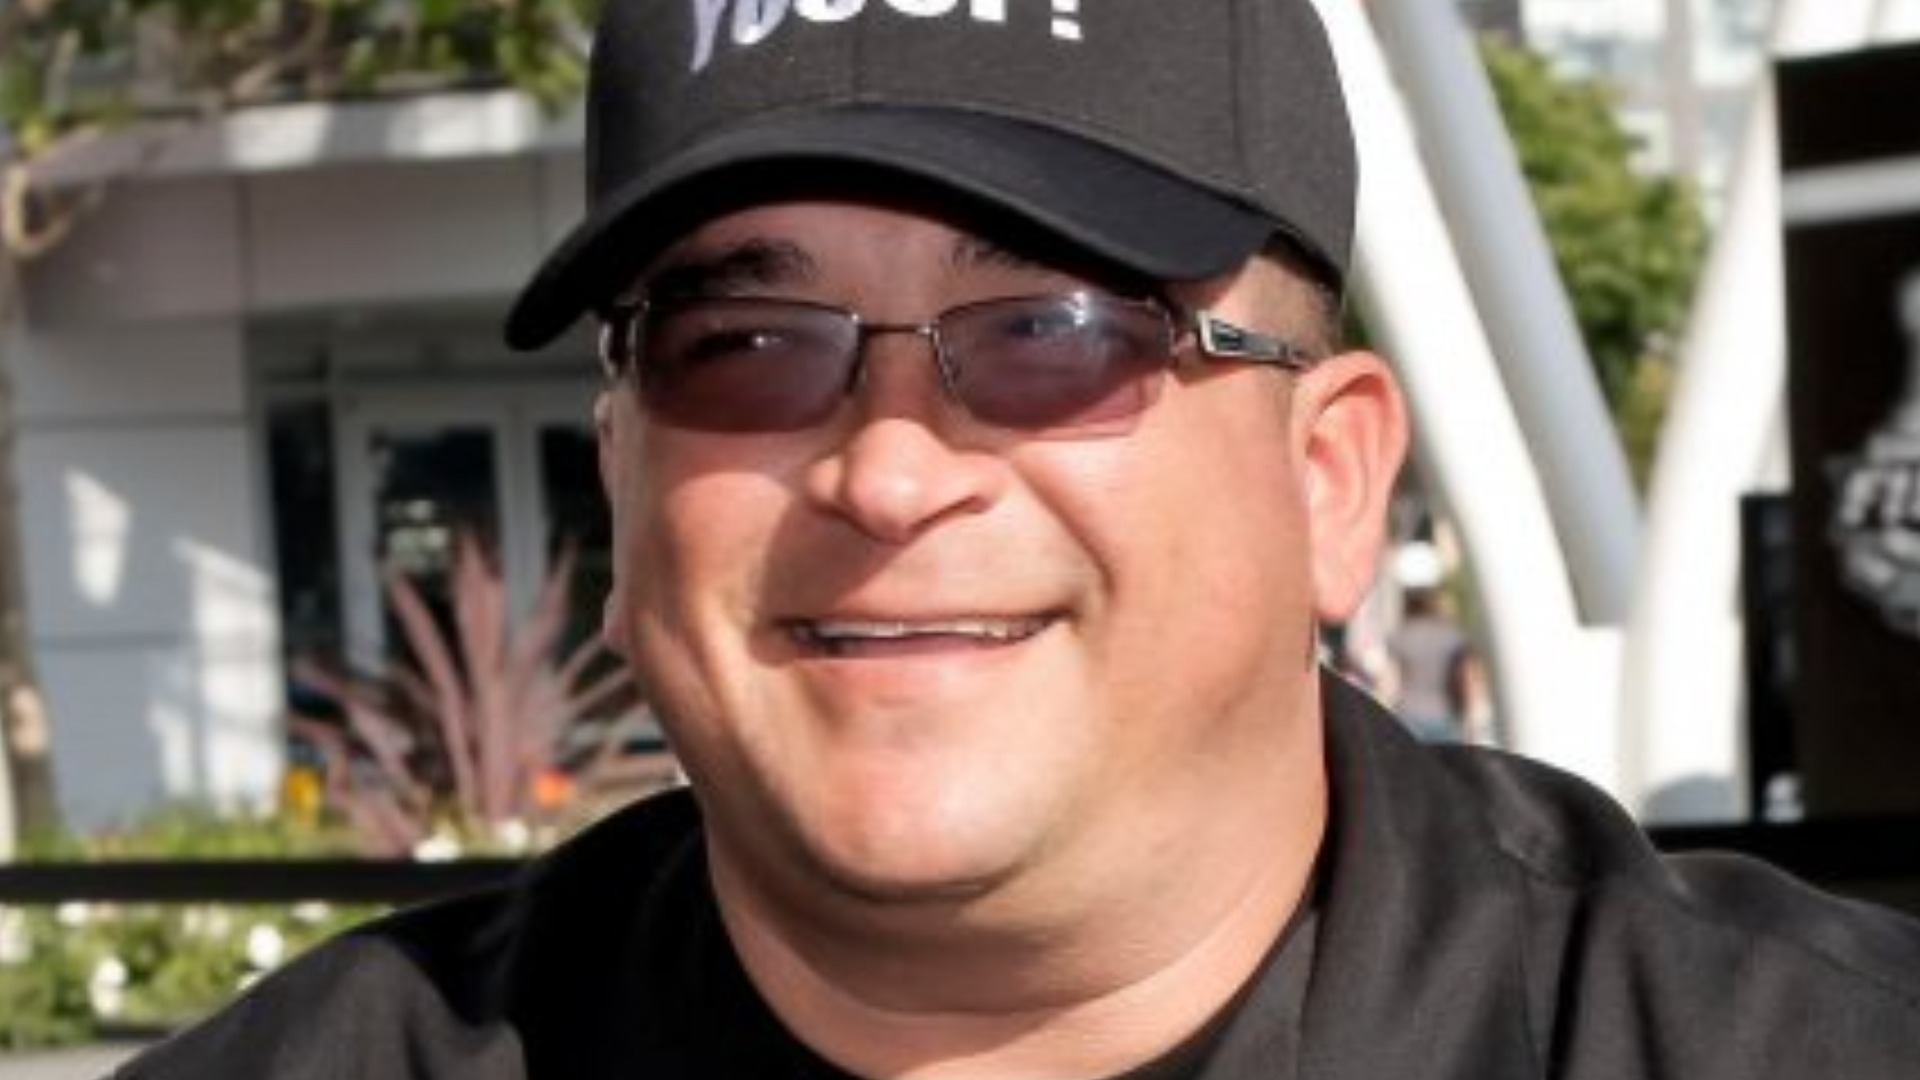 Here's Where Storage Wars Star Dave Hester Ended Up